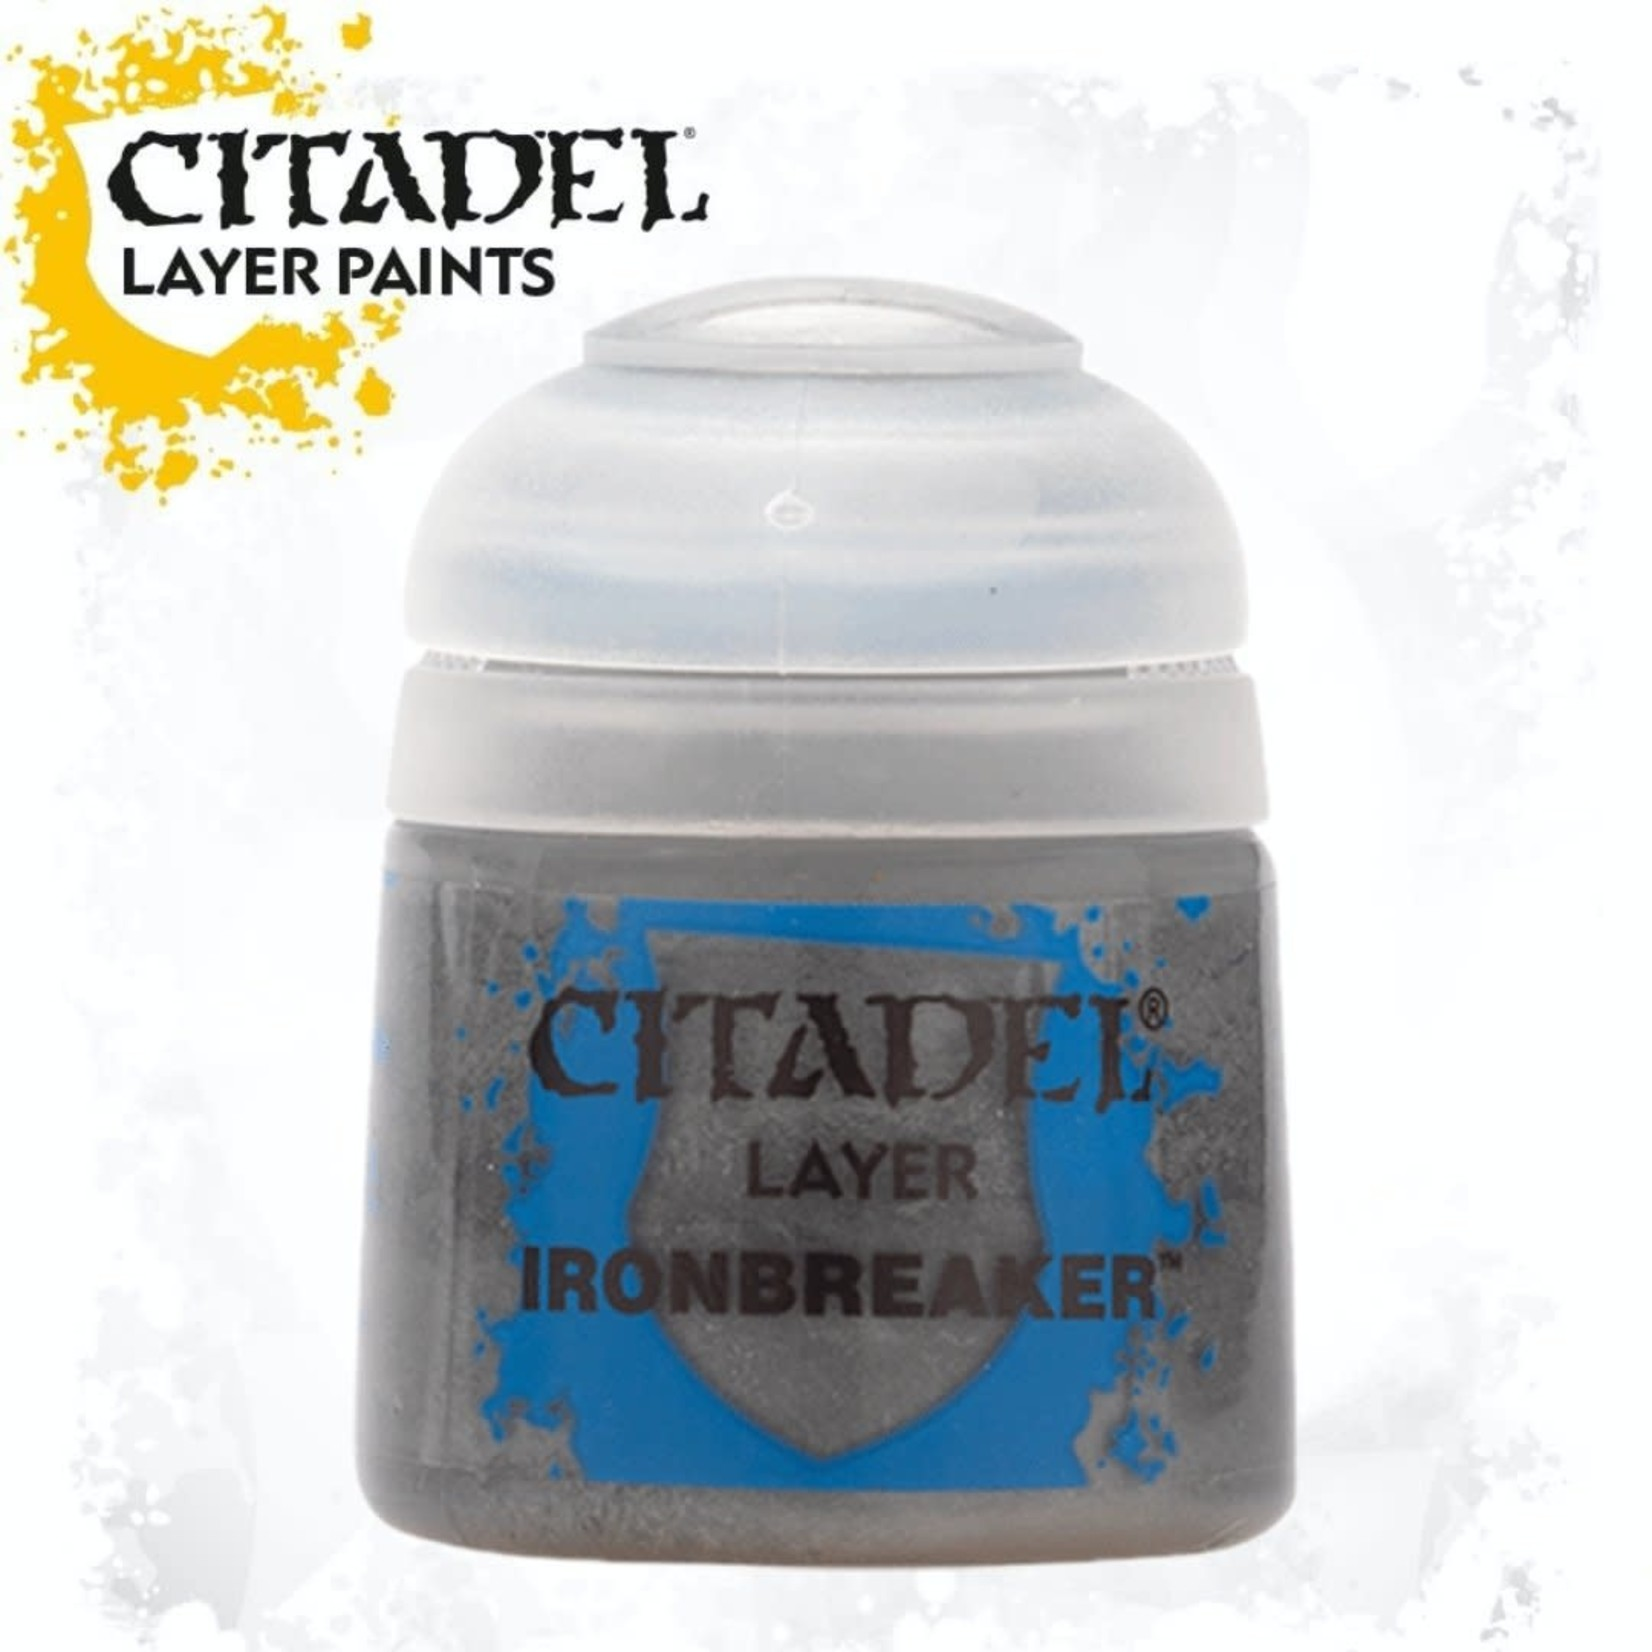 Citadel Citadel Paint - Layer: Ironbreaker